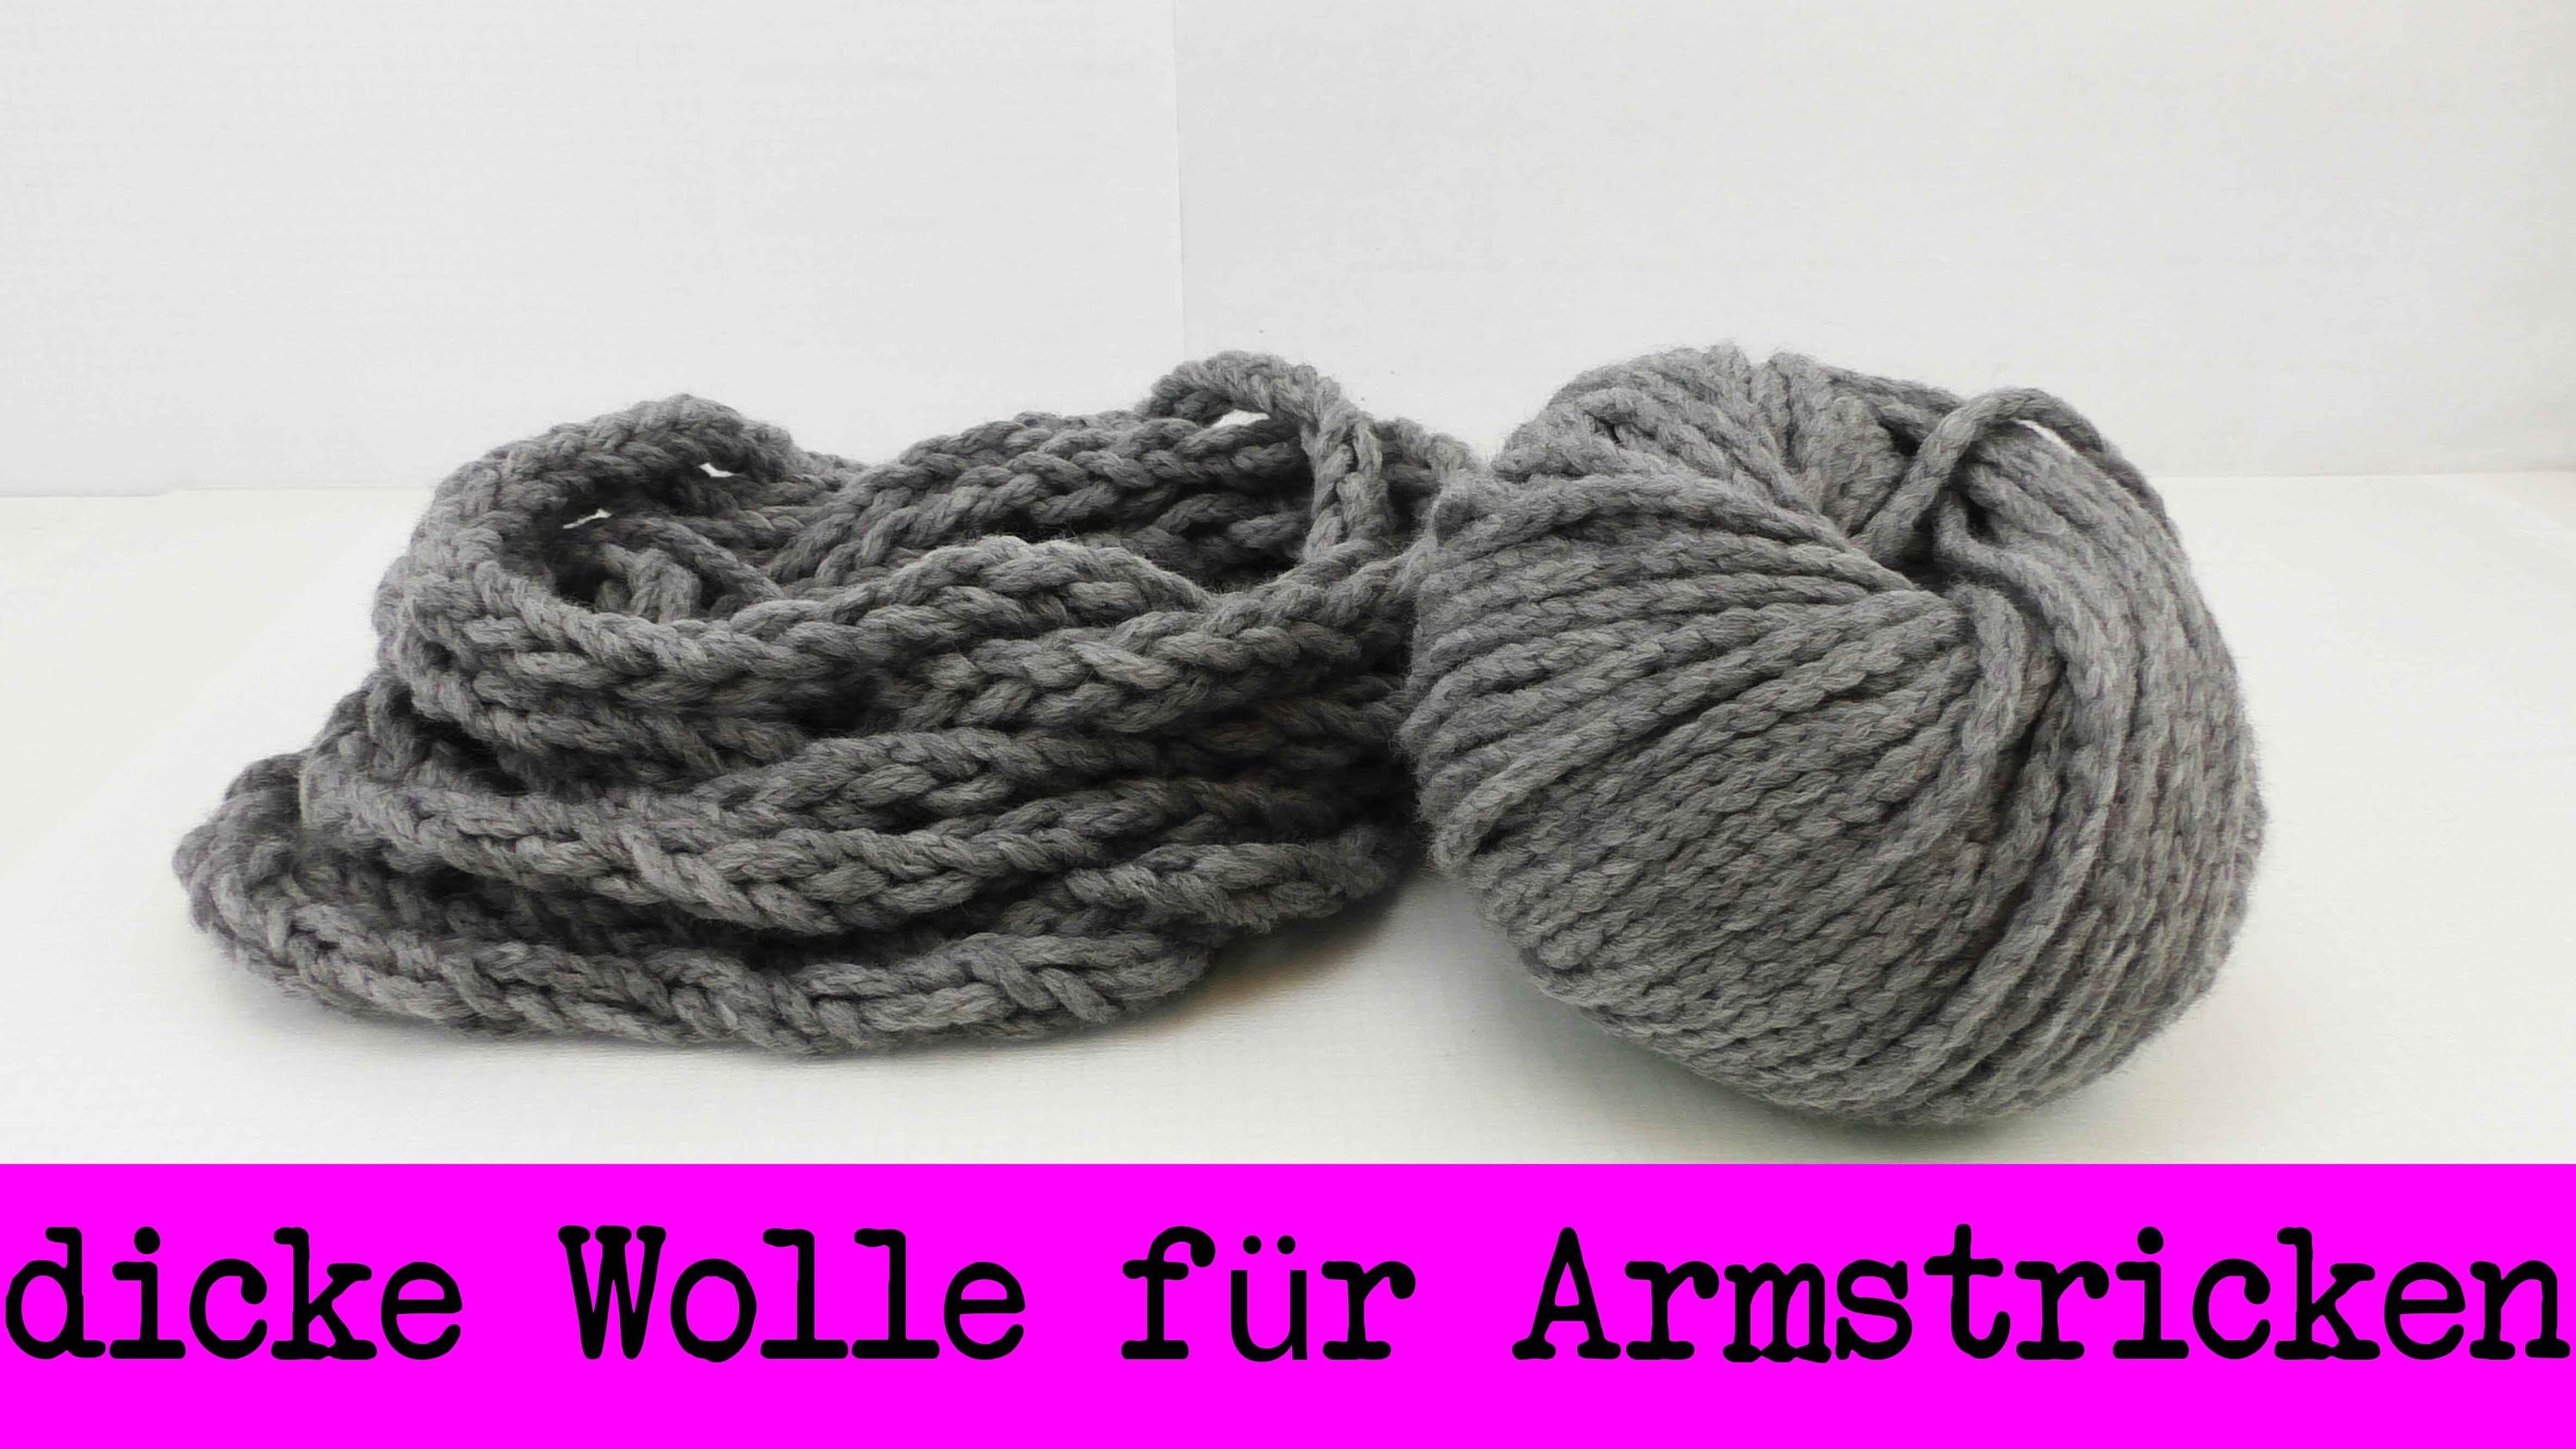 Super Dicke Wolle Fur Armstricken Selber Machen Fingerstricken Armstricken Fingerstricken Dicke Wolle